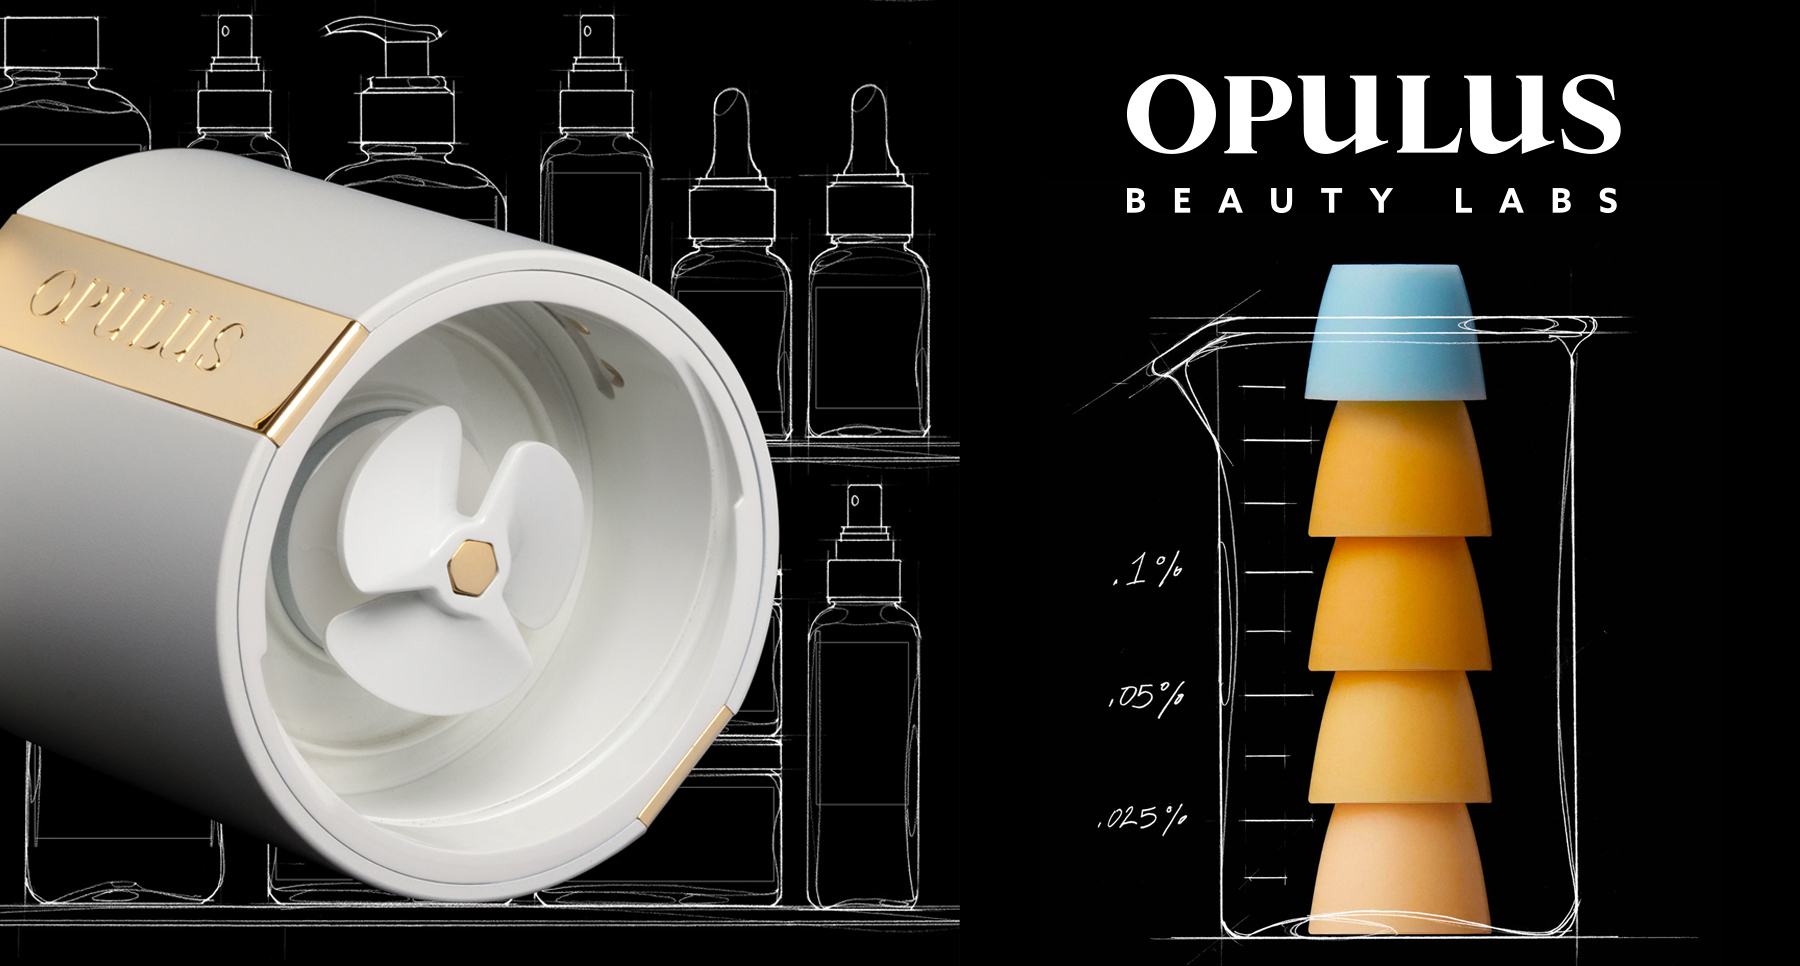 Beauty brand Opulus as part of a beauty insights blog